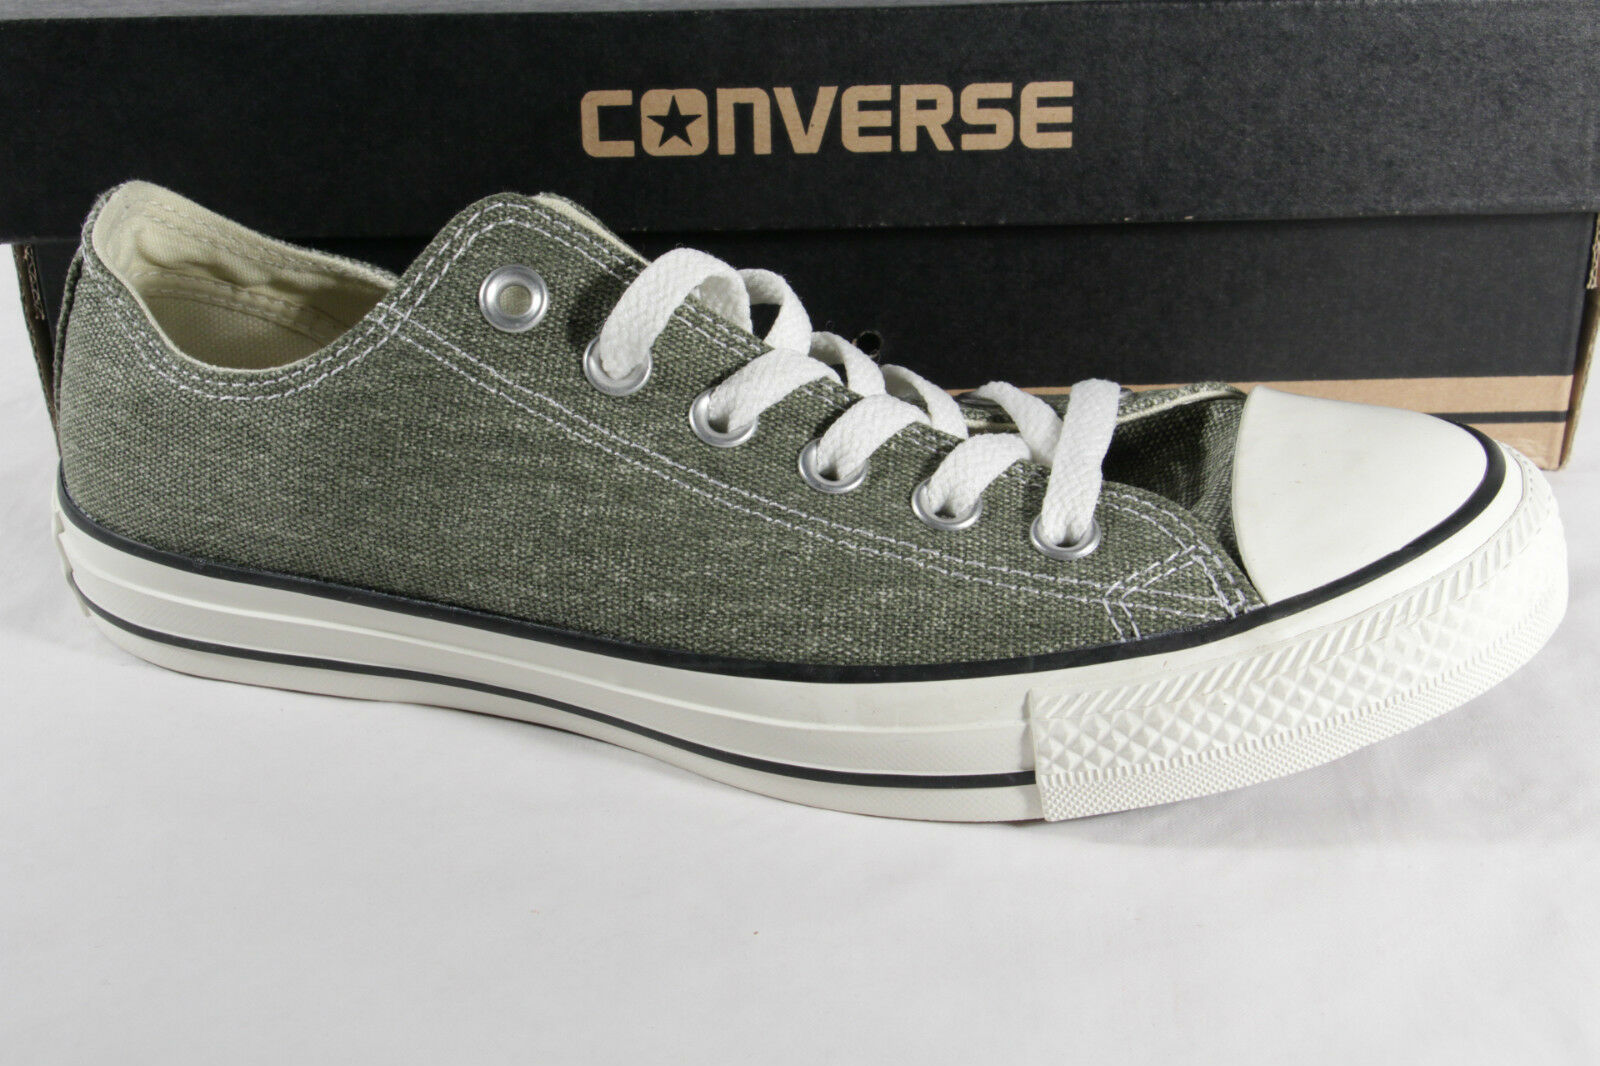 Converse All Star Chaussure à Lacets, Vert Jonc, Textile Lin, Neuf